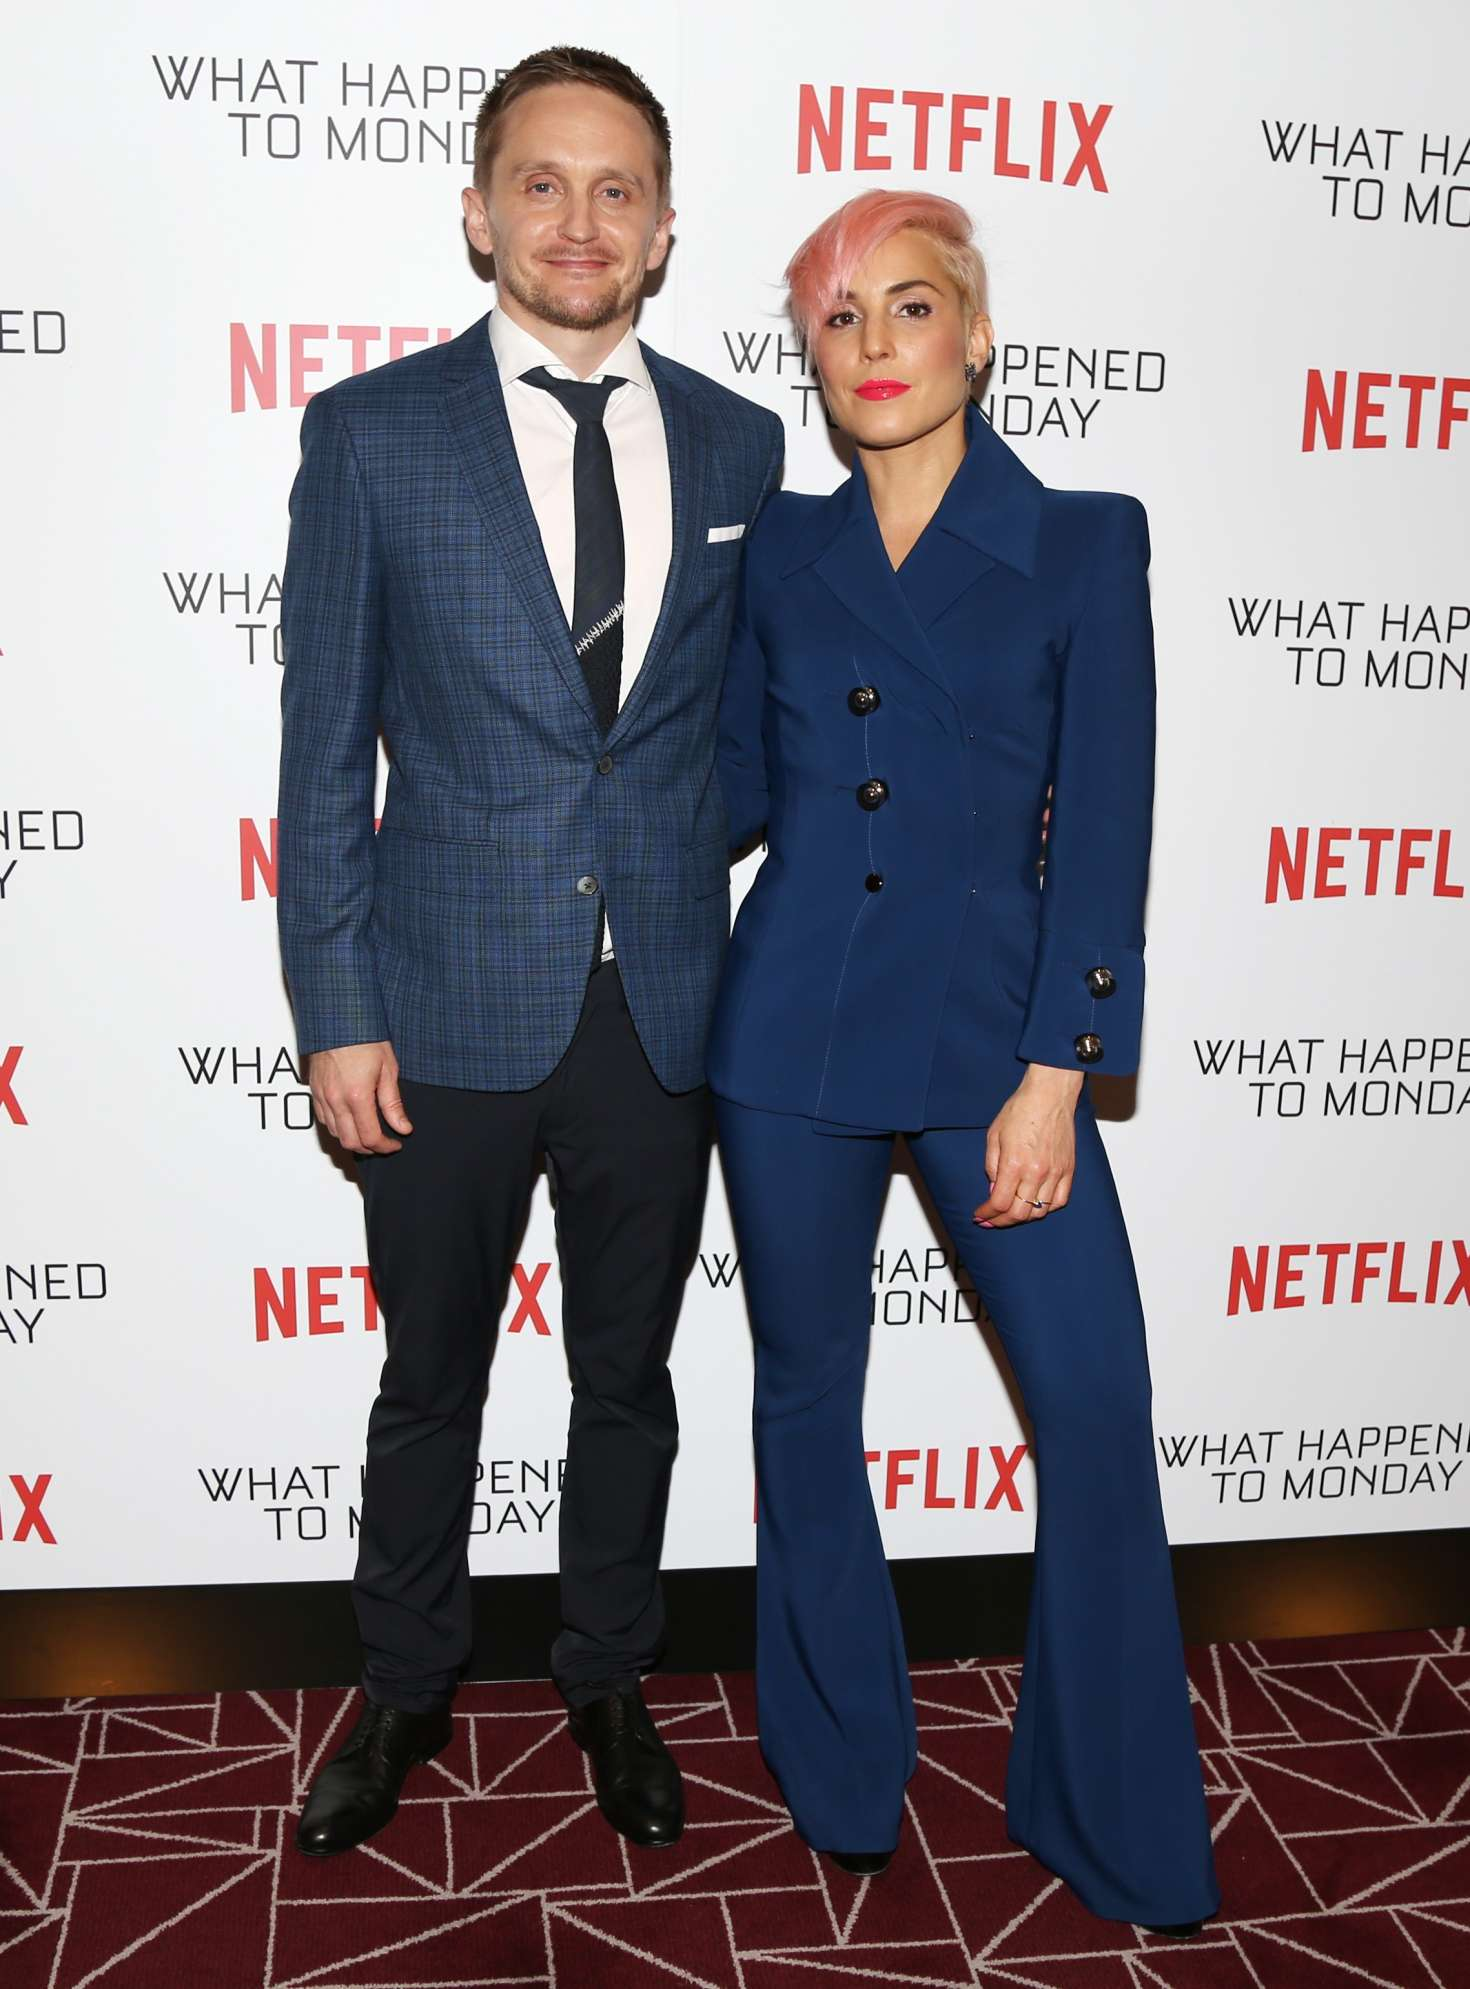 Noomi Rapace 2017 : Noomi Rapace: What Happened to Monday Screening -23